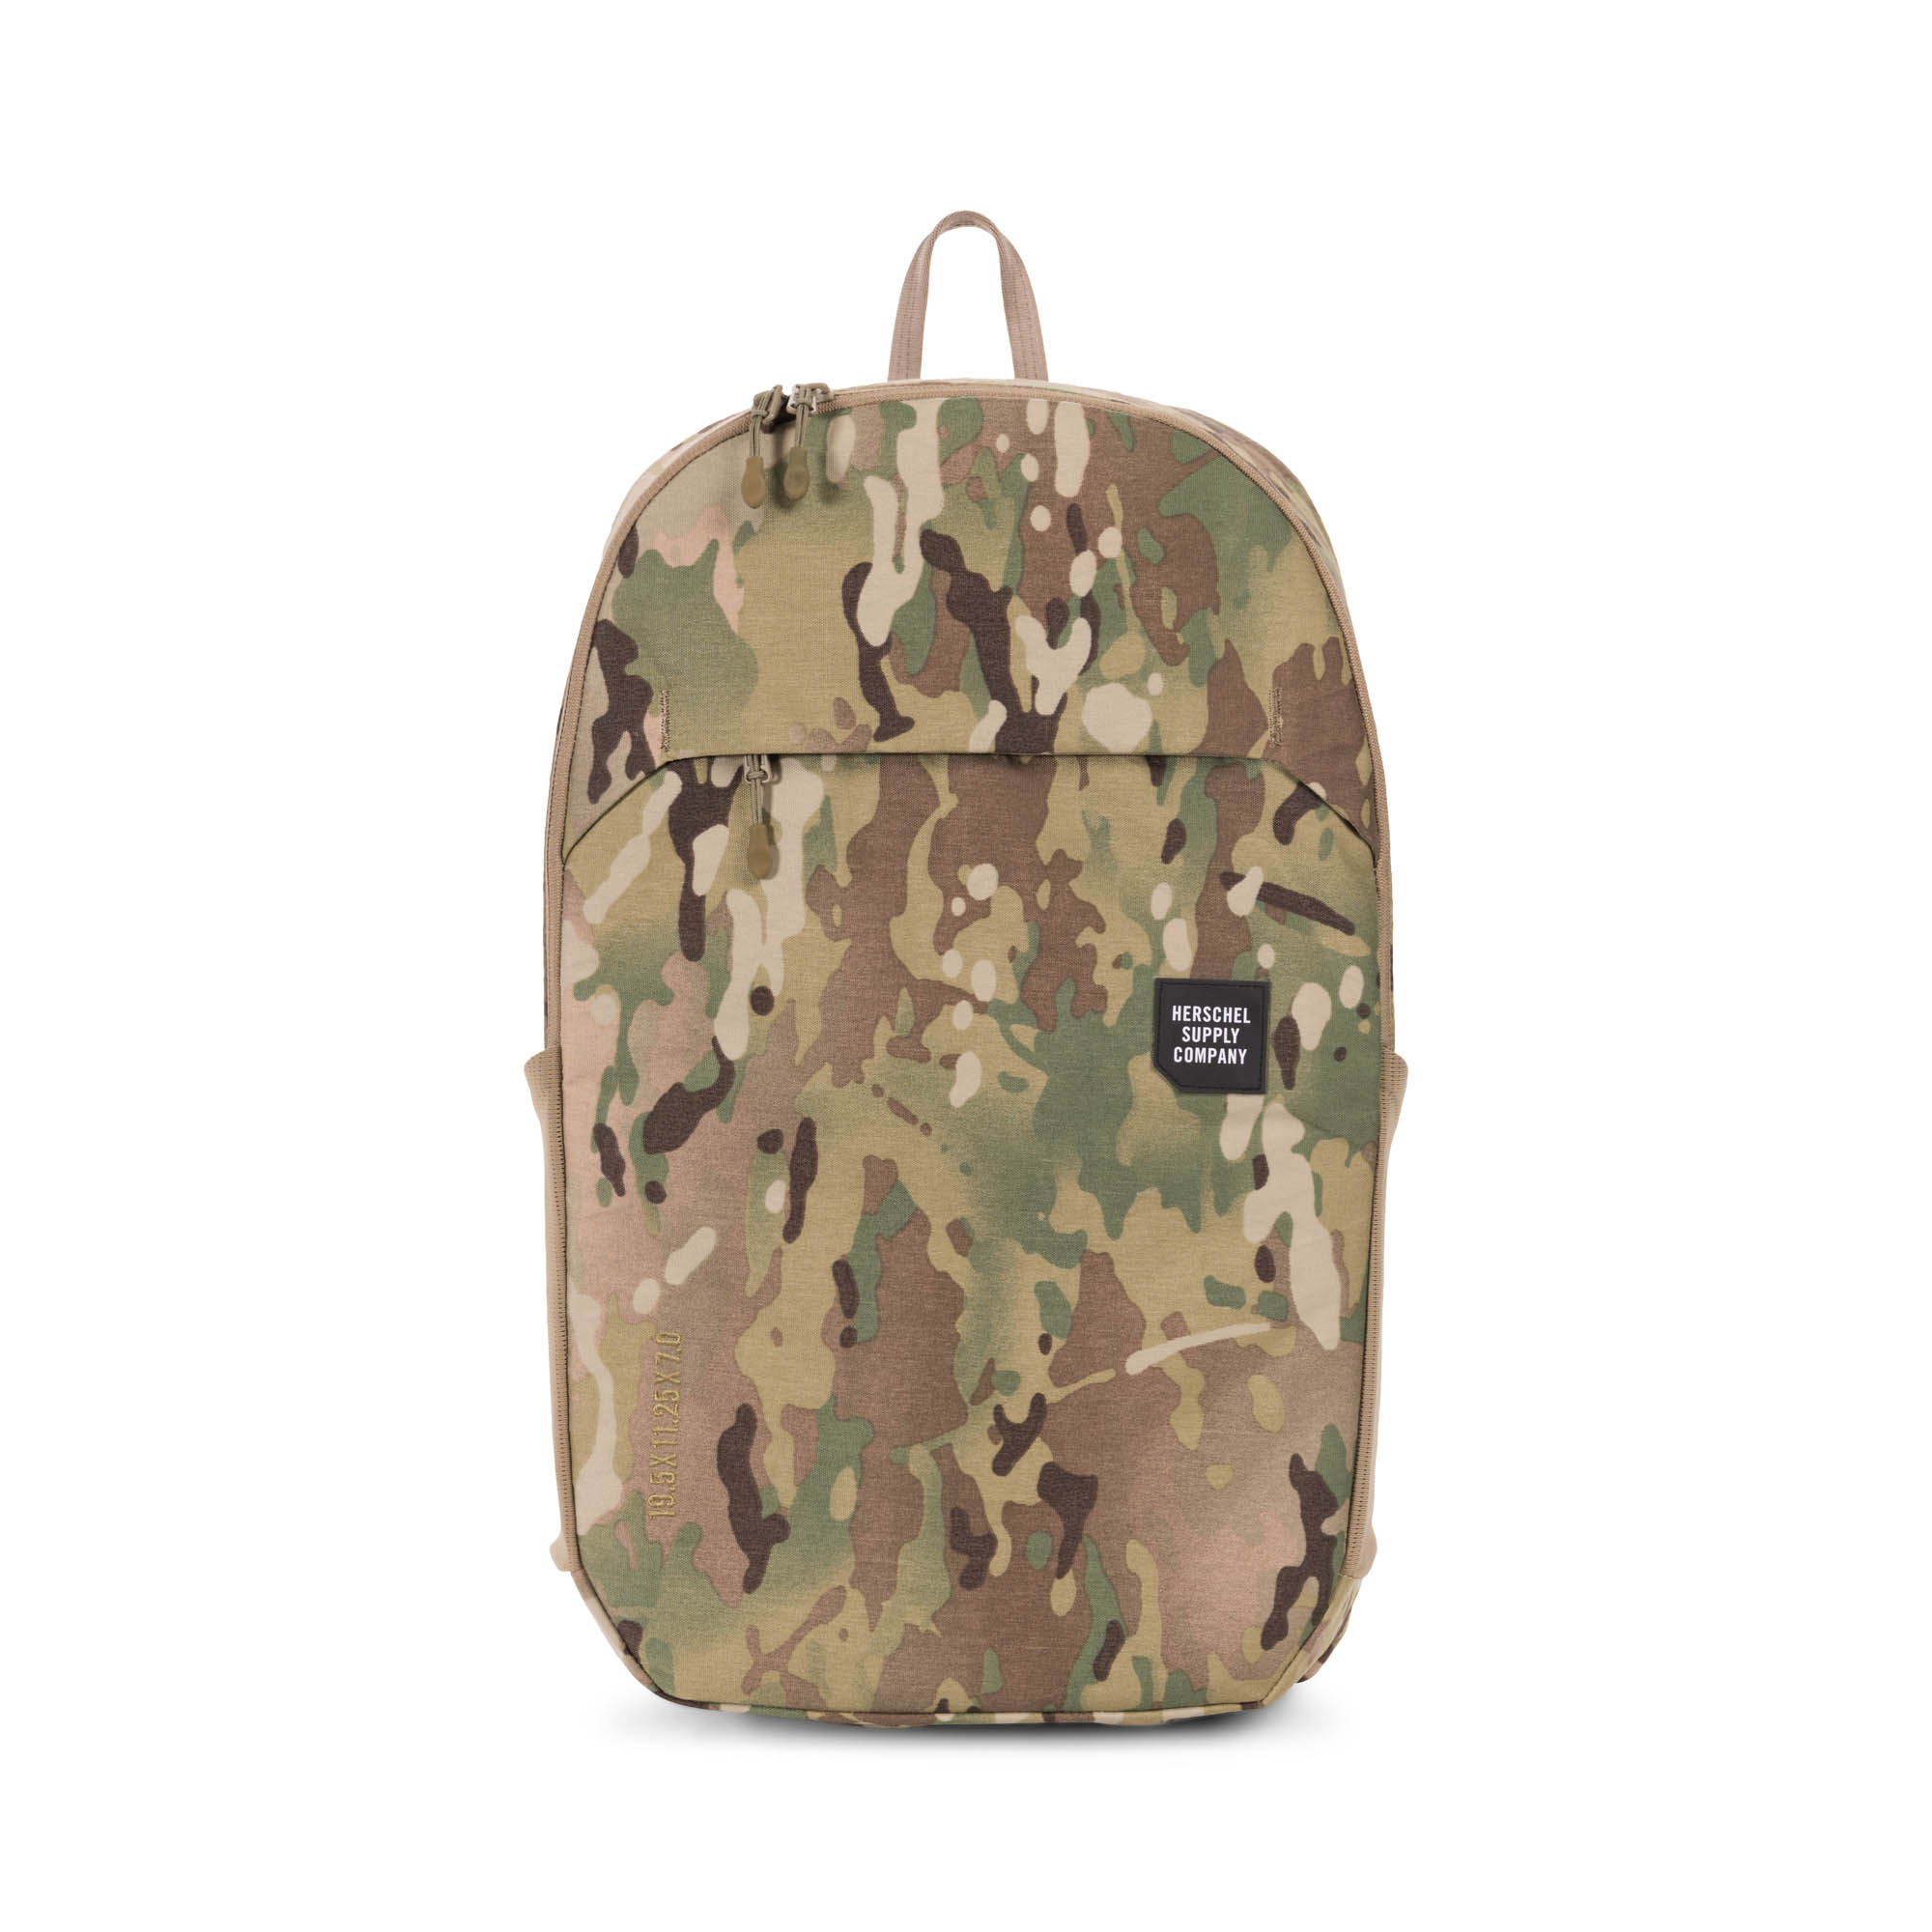 3e49e41b132 Mammoth Backpack Large